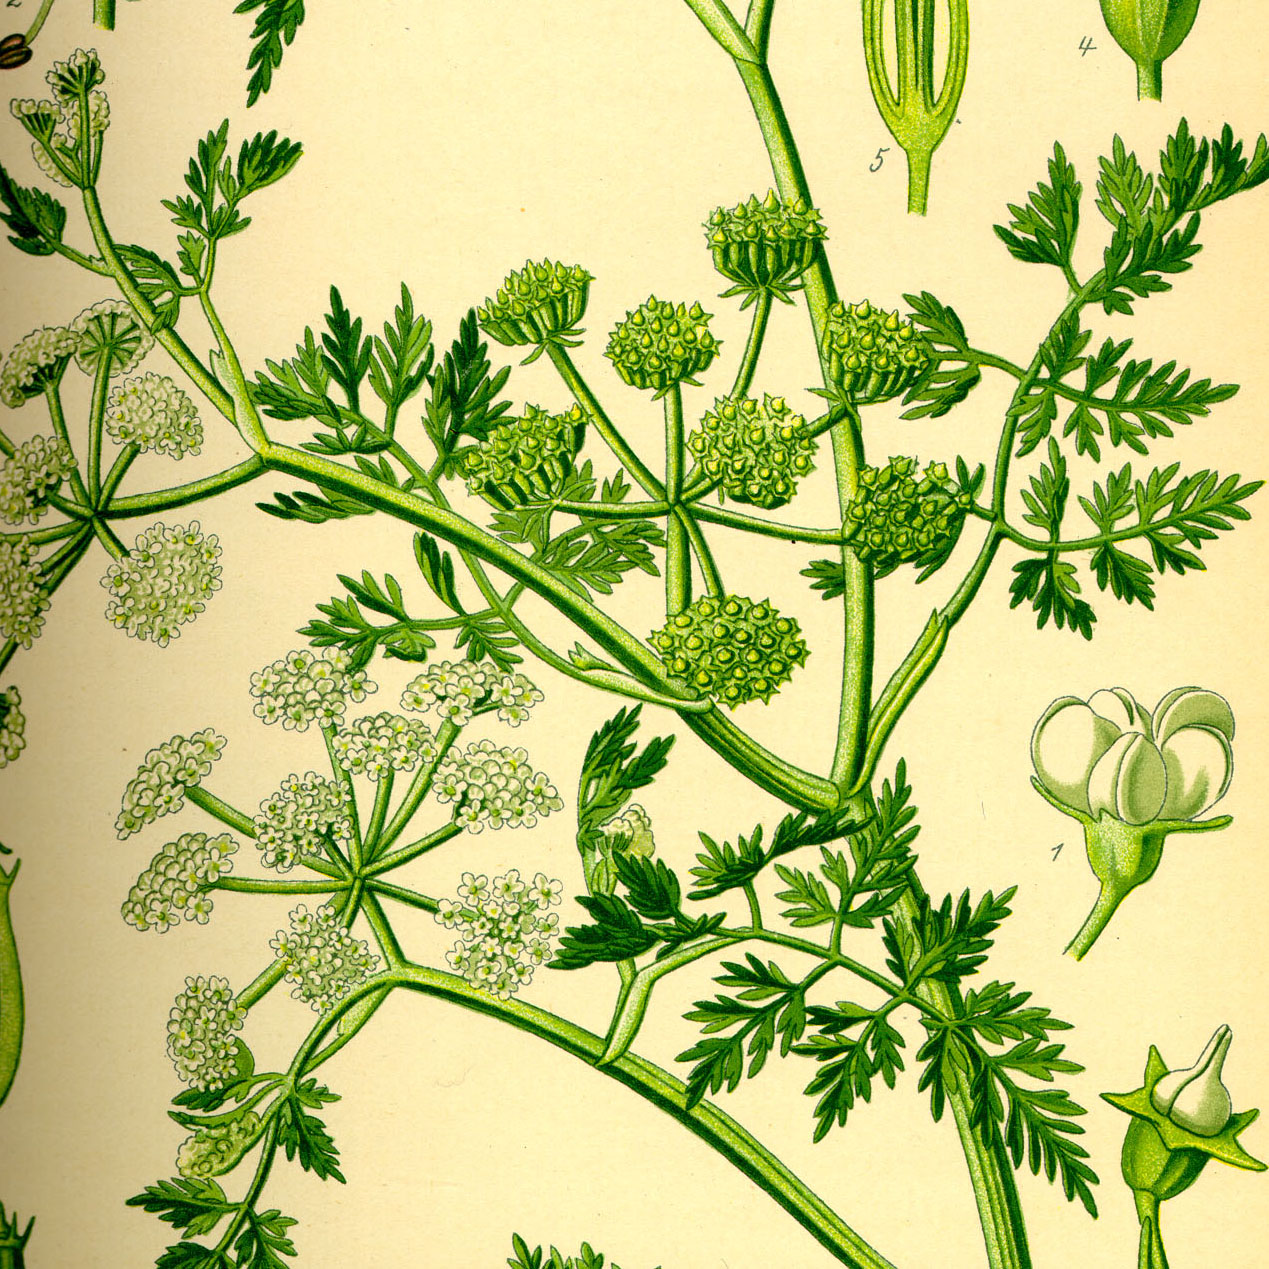 Water fennel whole - 1000g